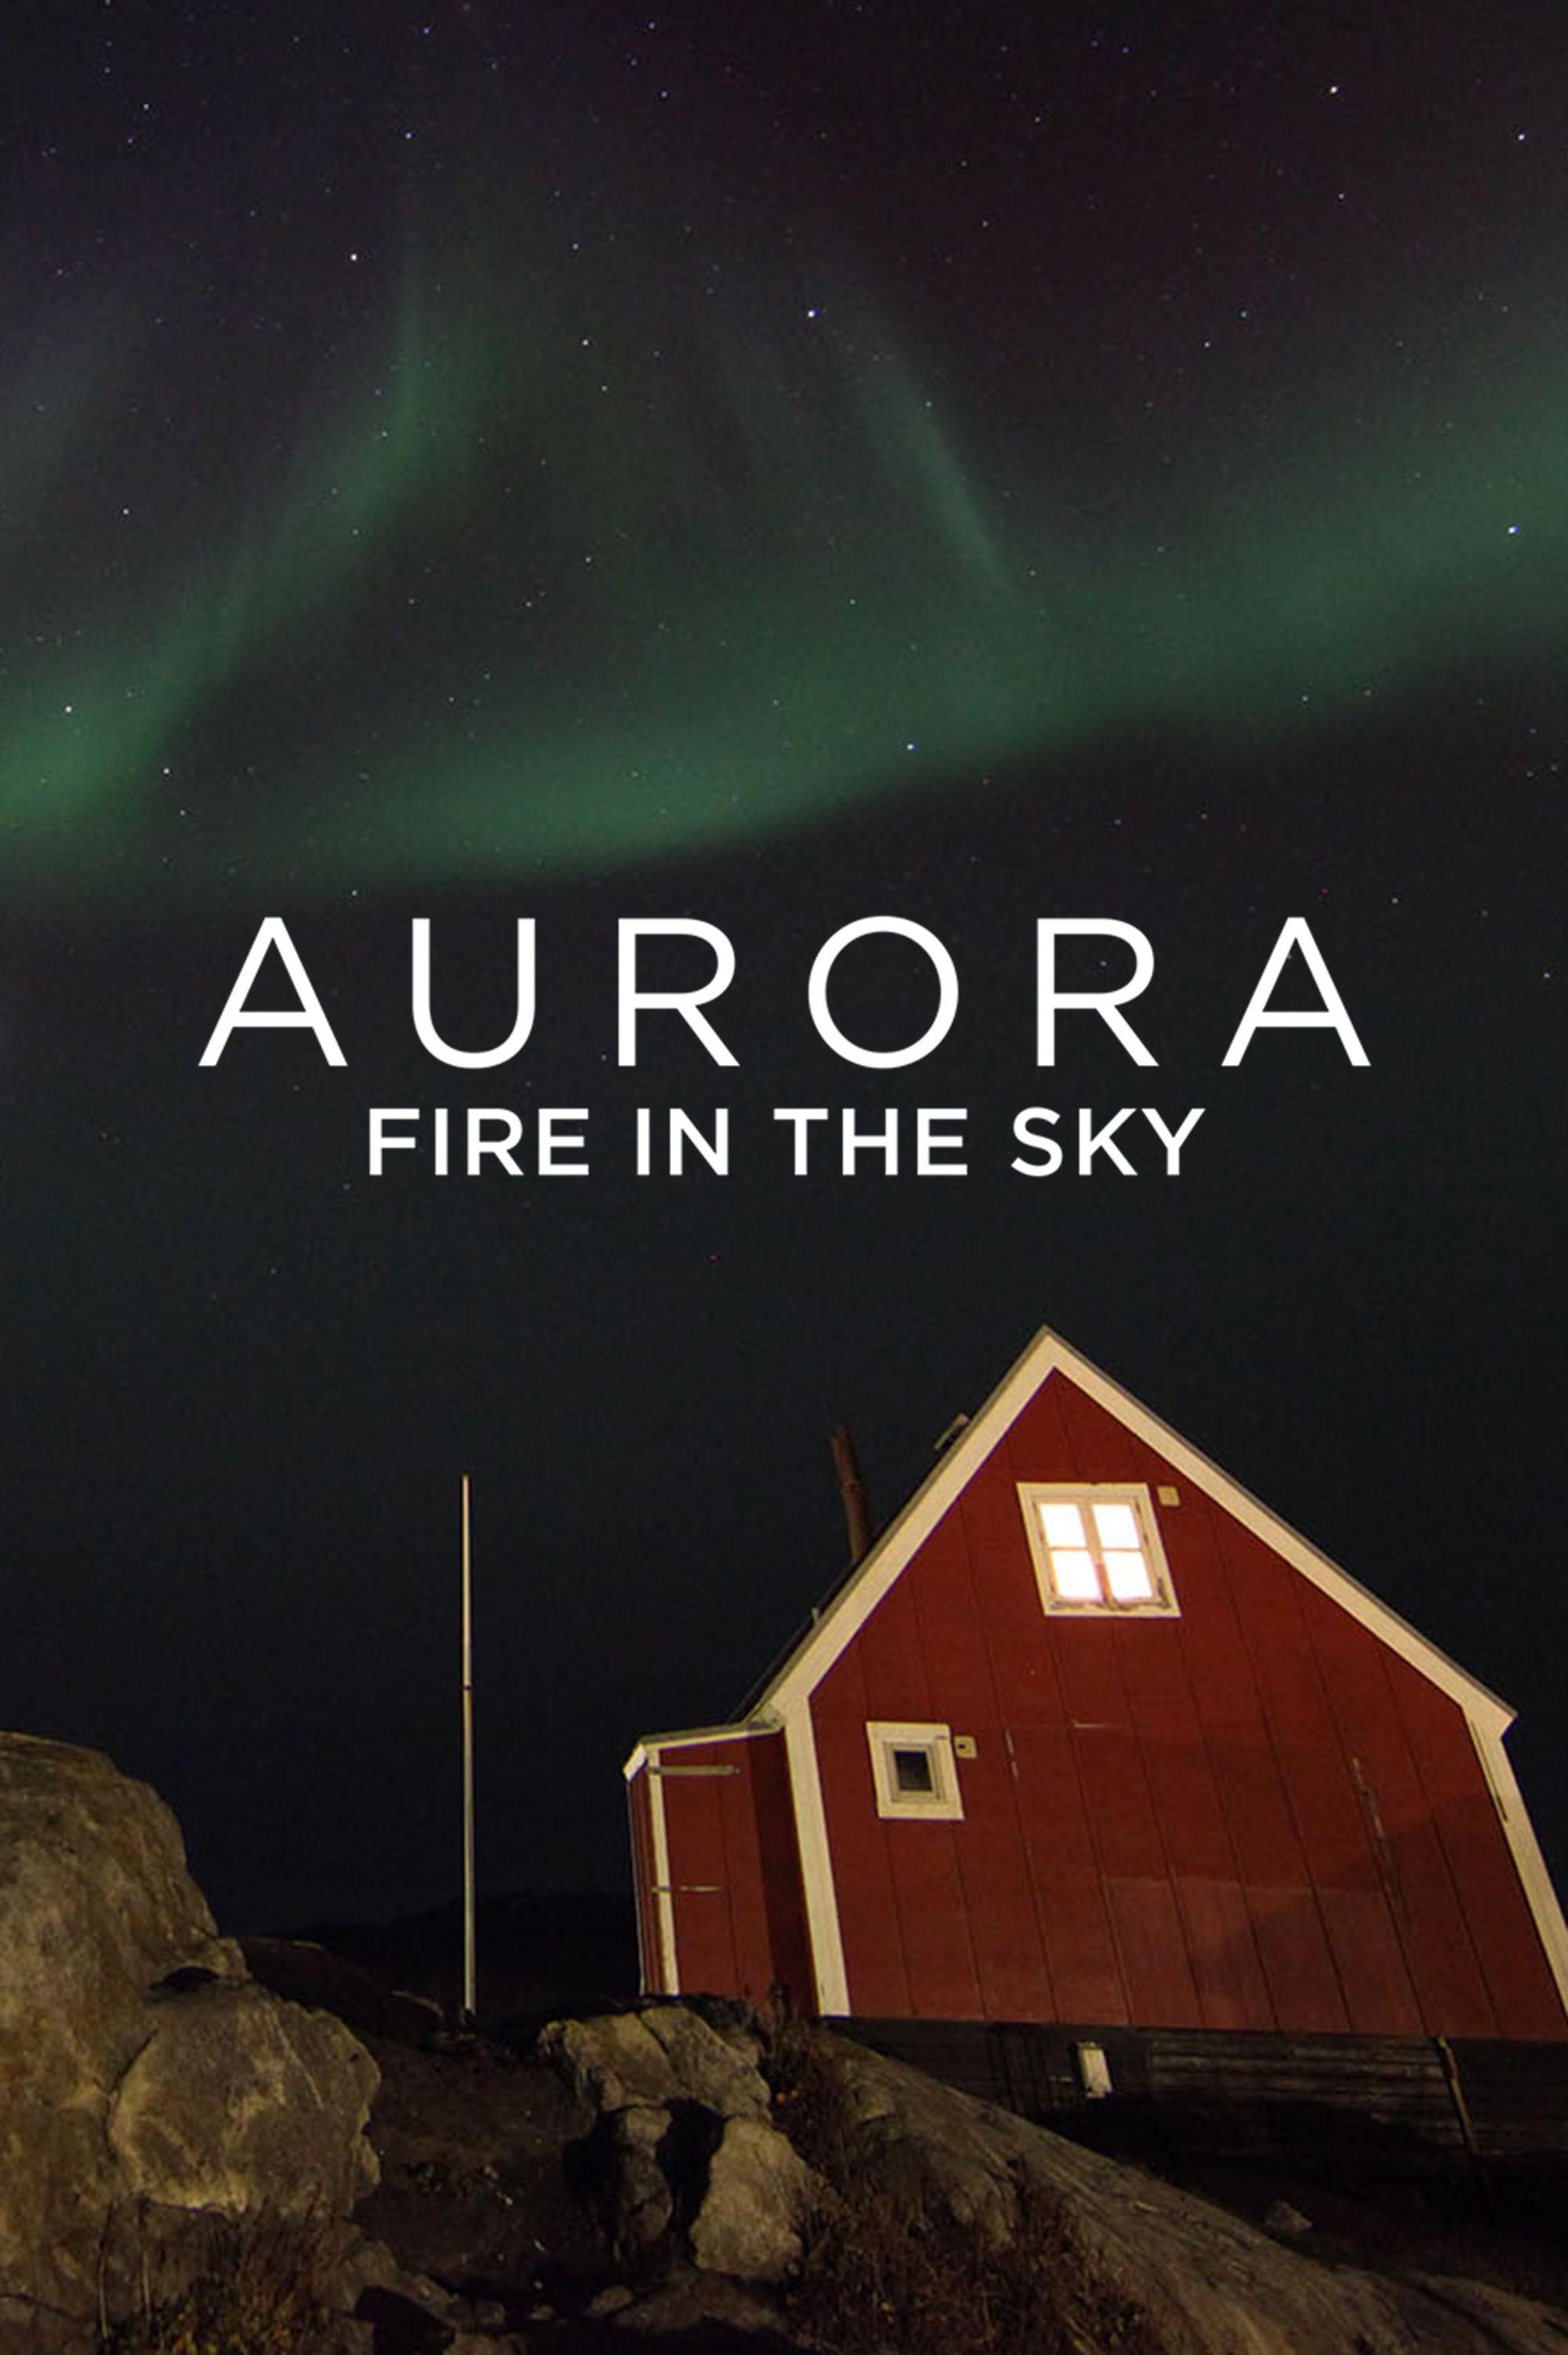 aurora fire in the sky programs pbs socal. Black Bedroom Furniture Sets. Home Design Ideas